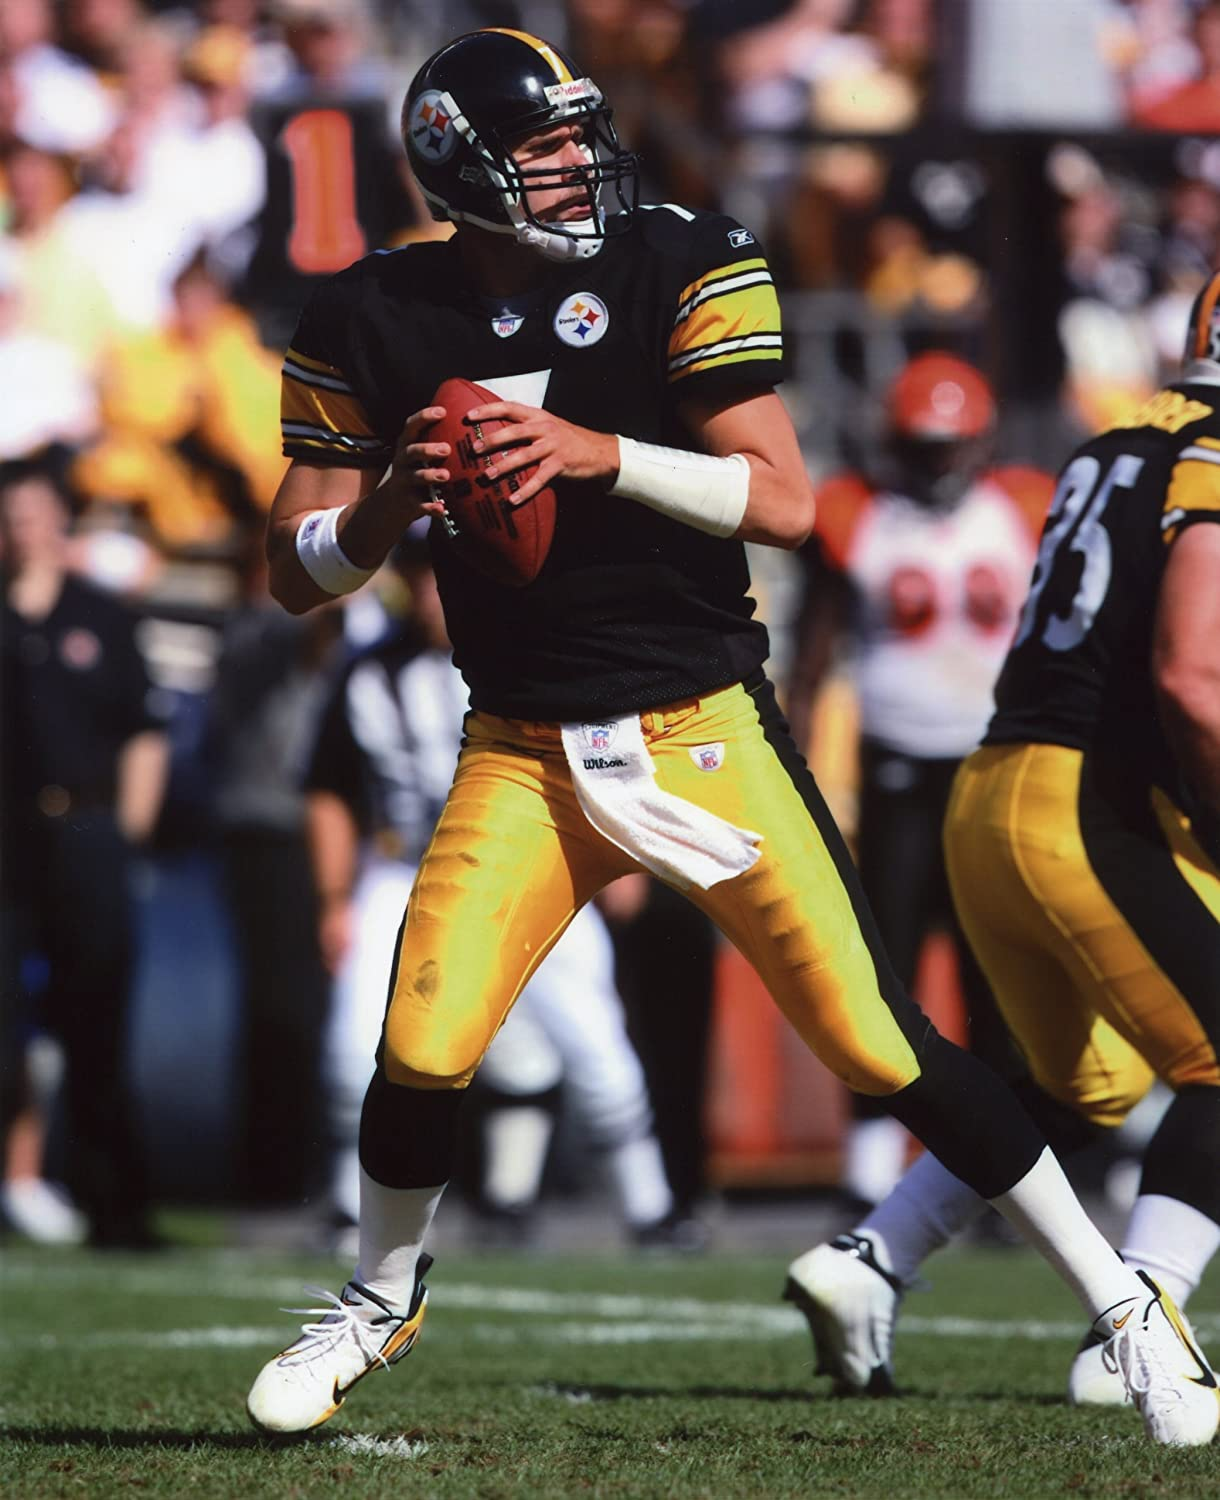 A BEN ROETHLISBERGER PITTSBURGH STEELERS 8X10 SPORTS ACTION PHOTO